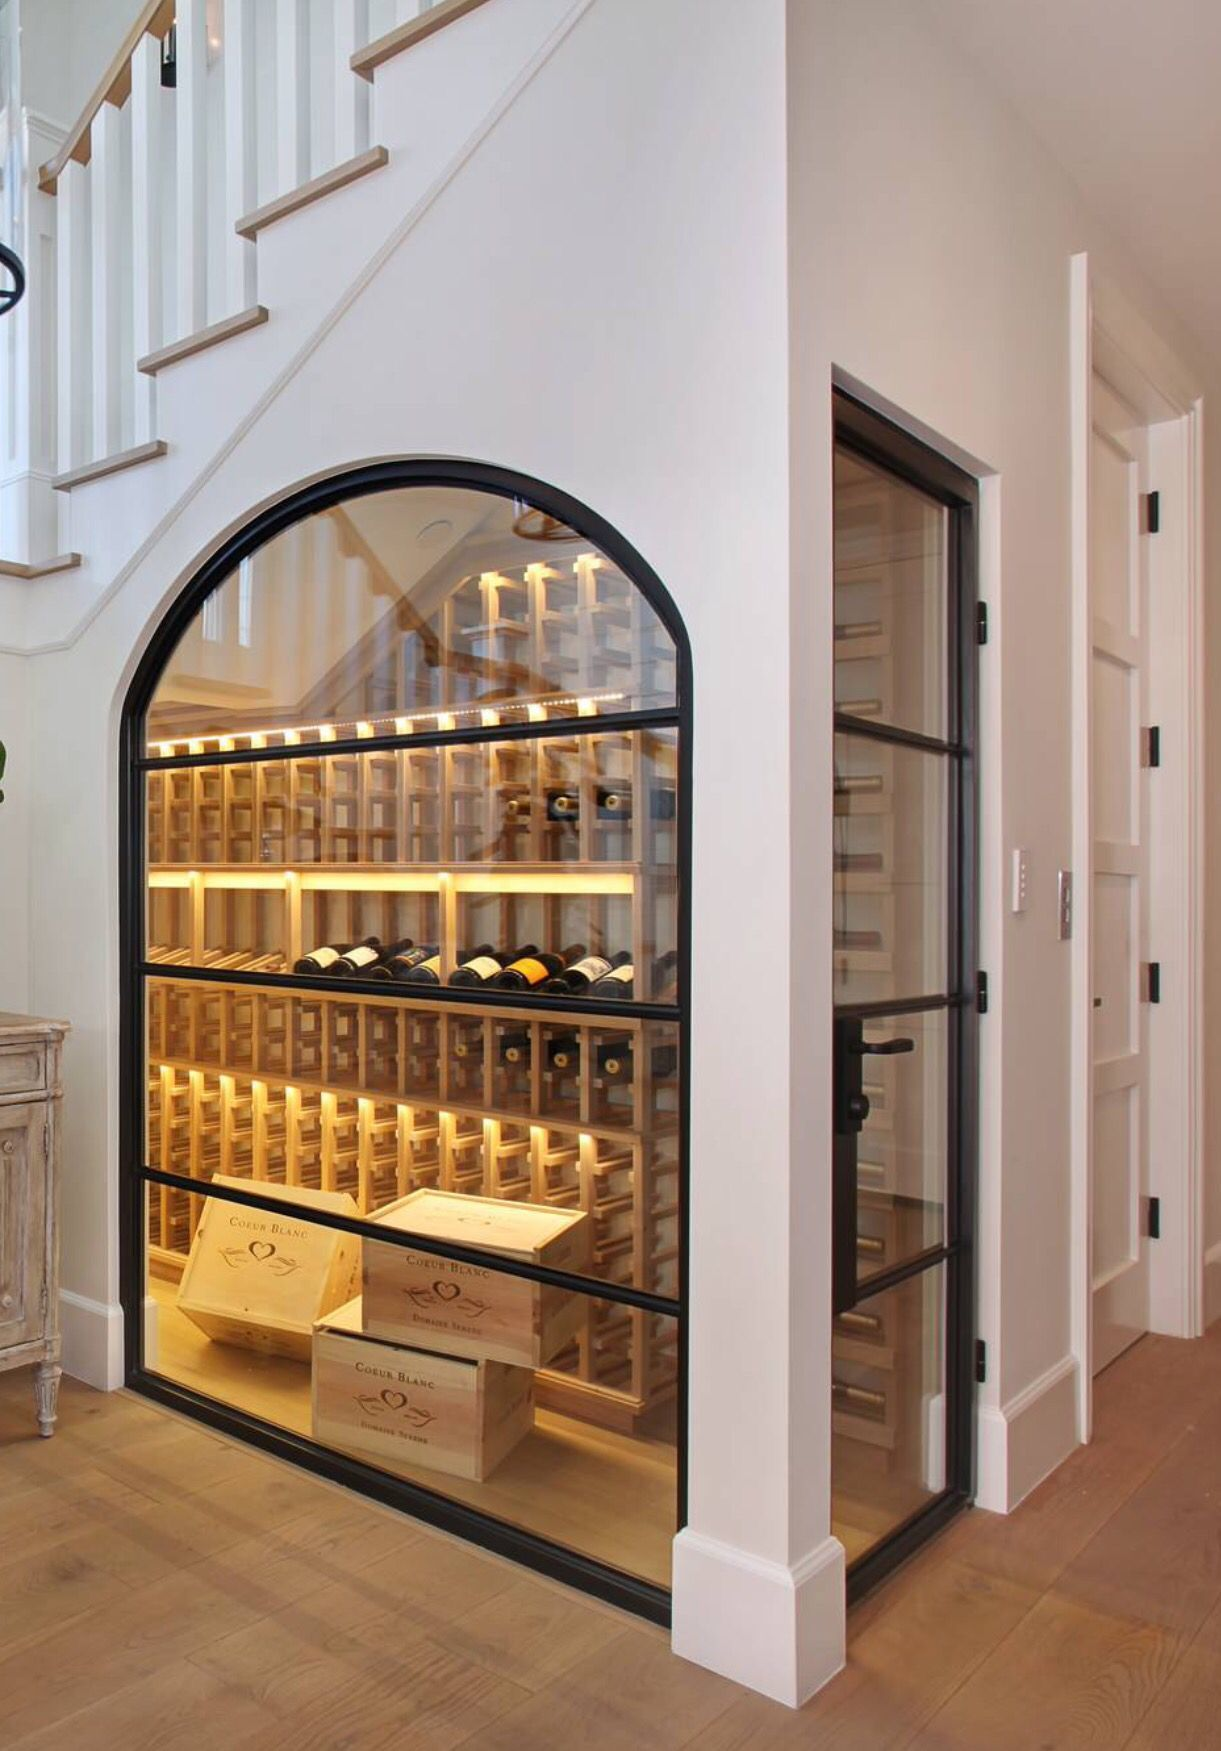 Would you put a wine cellar beneath your stairs House Stuff